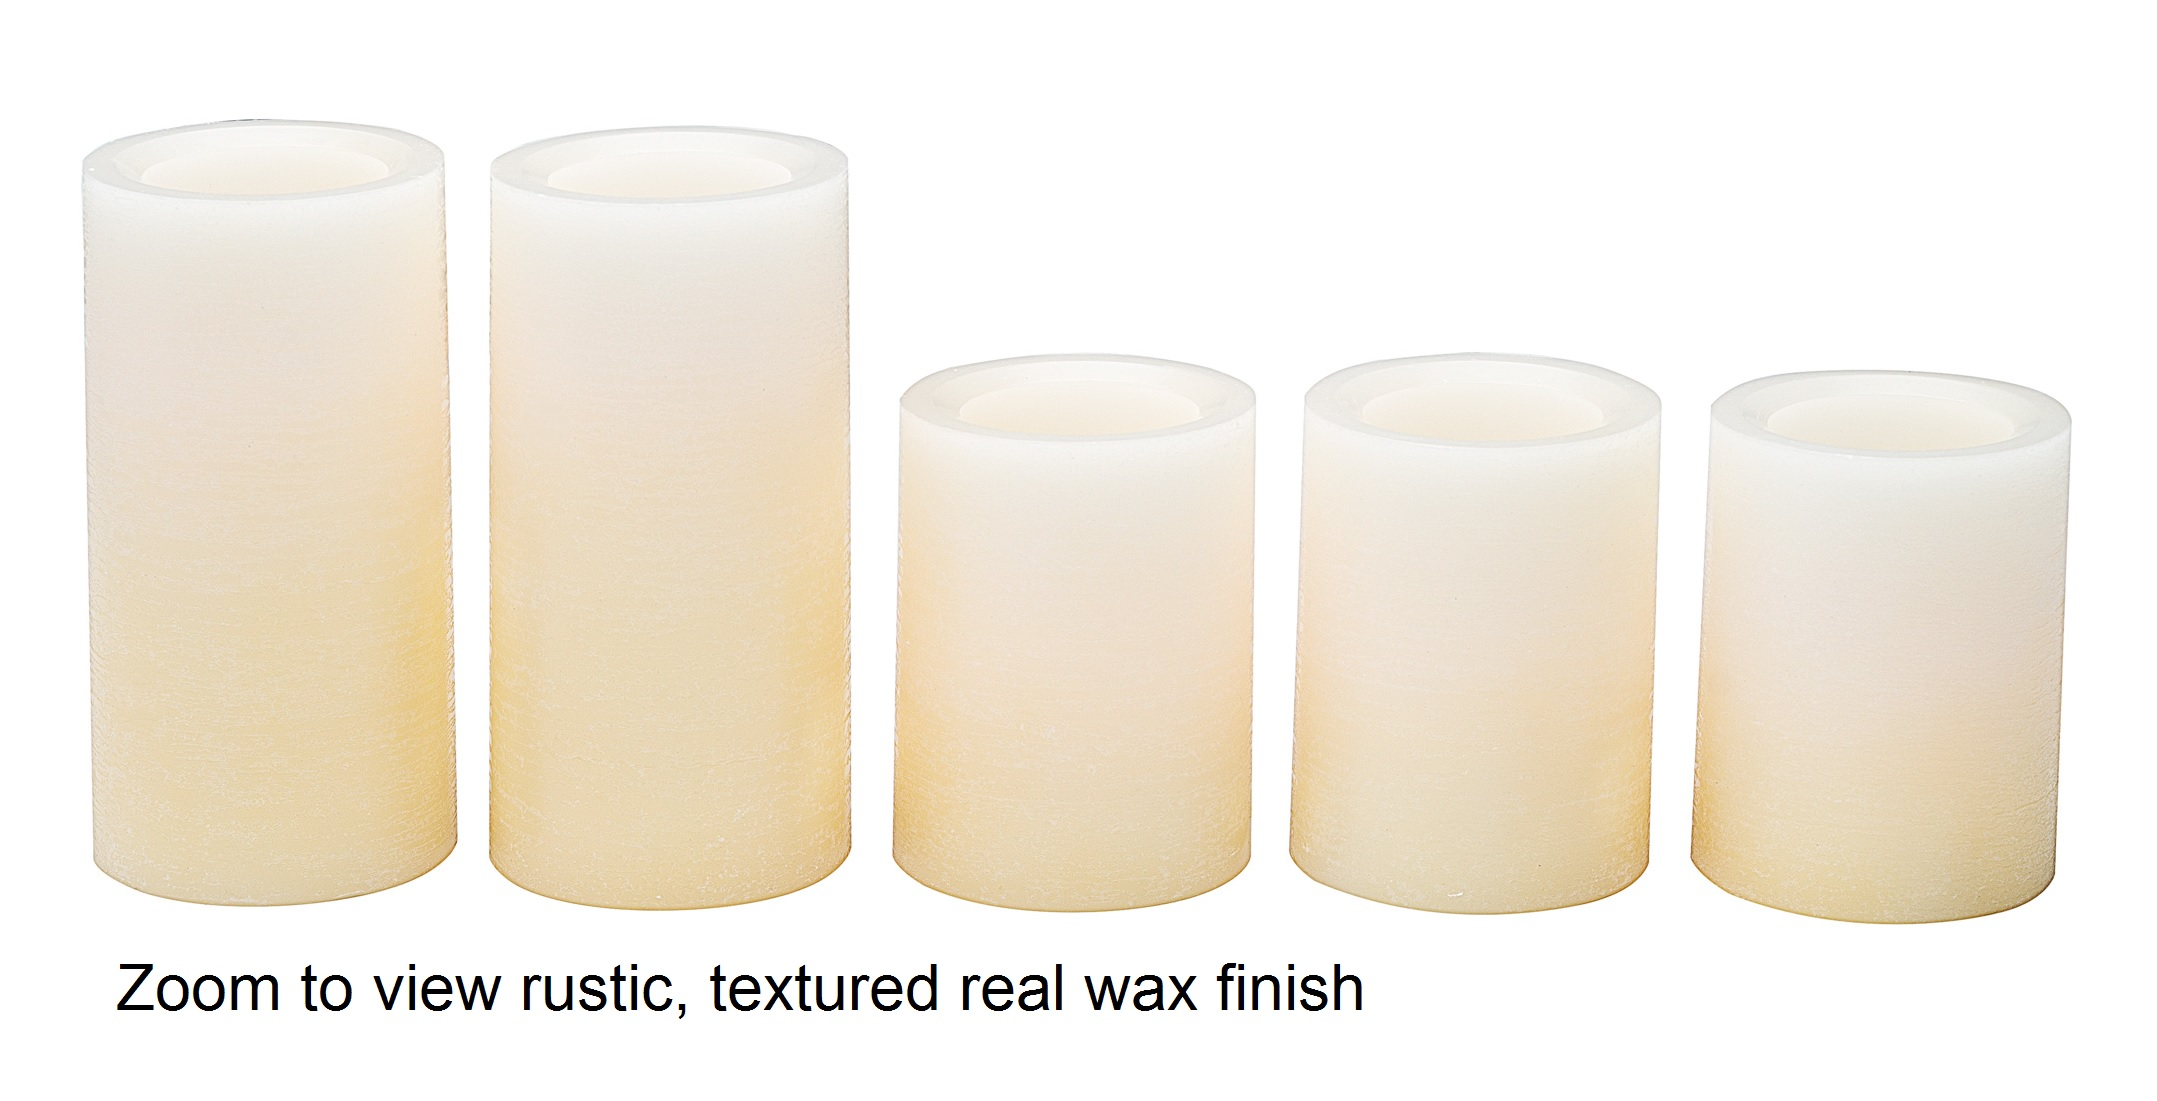 Buttercream Candle Impressions Ombre Design Pillar Real Wax Flameless Candles w//Auto Timer Feature Set of 5